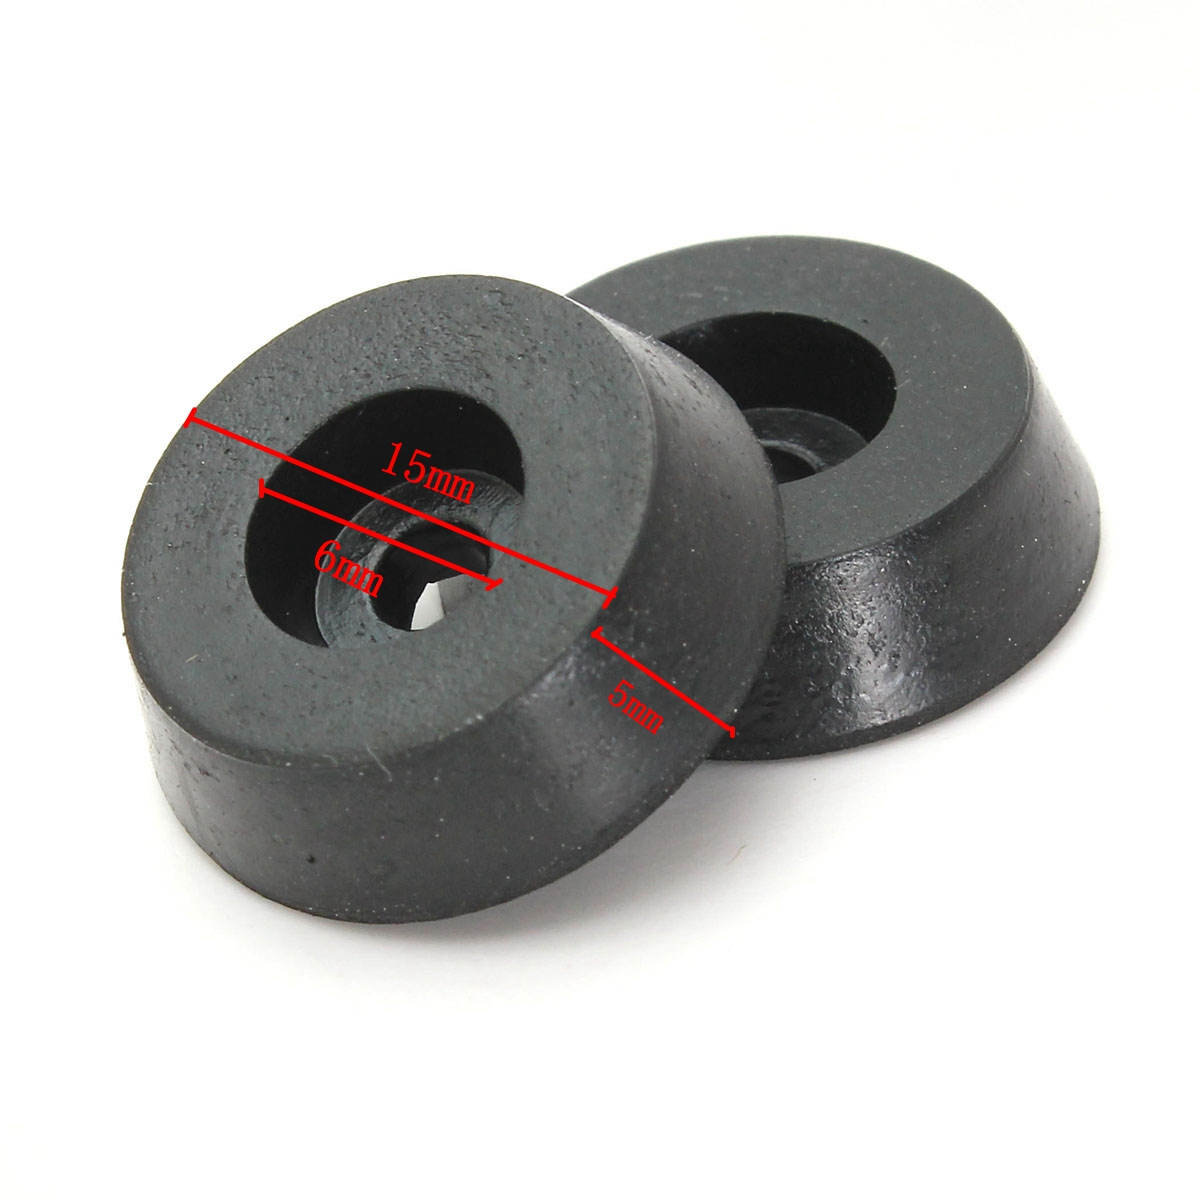 20pcs Rubber Table Chair Furniture Feet Leg Tips Pad Tile  : 56CF03CD66CC6656CD87D2CCC89DCFD27366229CC8D2CD9A9E23D2CD331699C826169936D92326C916F5CB from www.ebay.co.uk size 1200 x 1200 jpeg 275kB